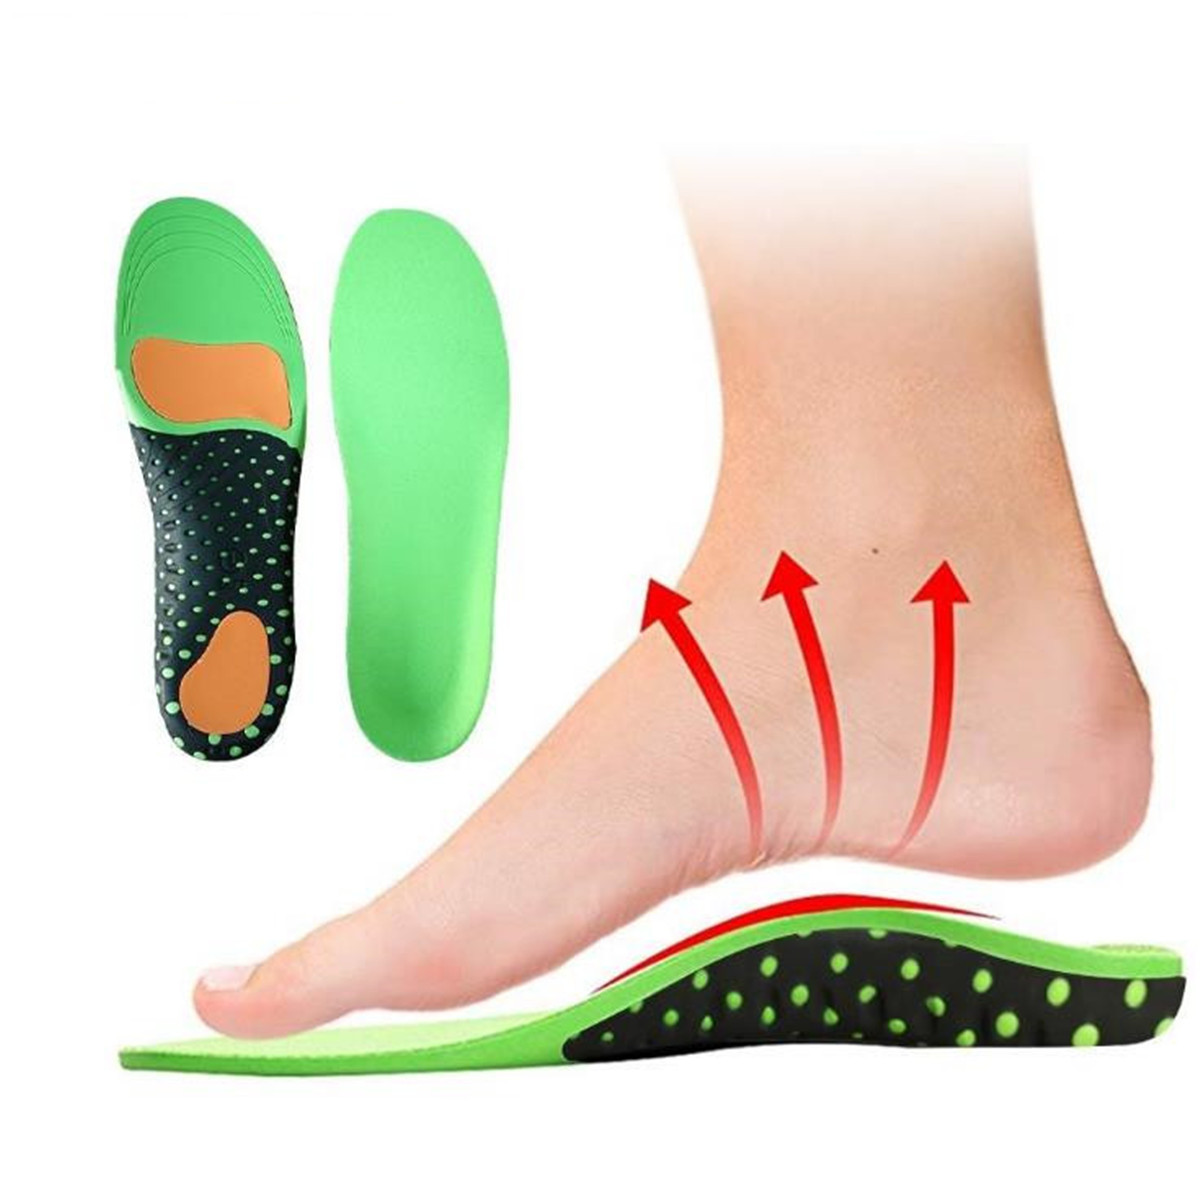 3D Orthotic Flat Feet Foot High Arch Gel Heel Support Shoe Inserts Insole Pad 20